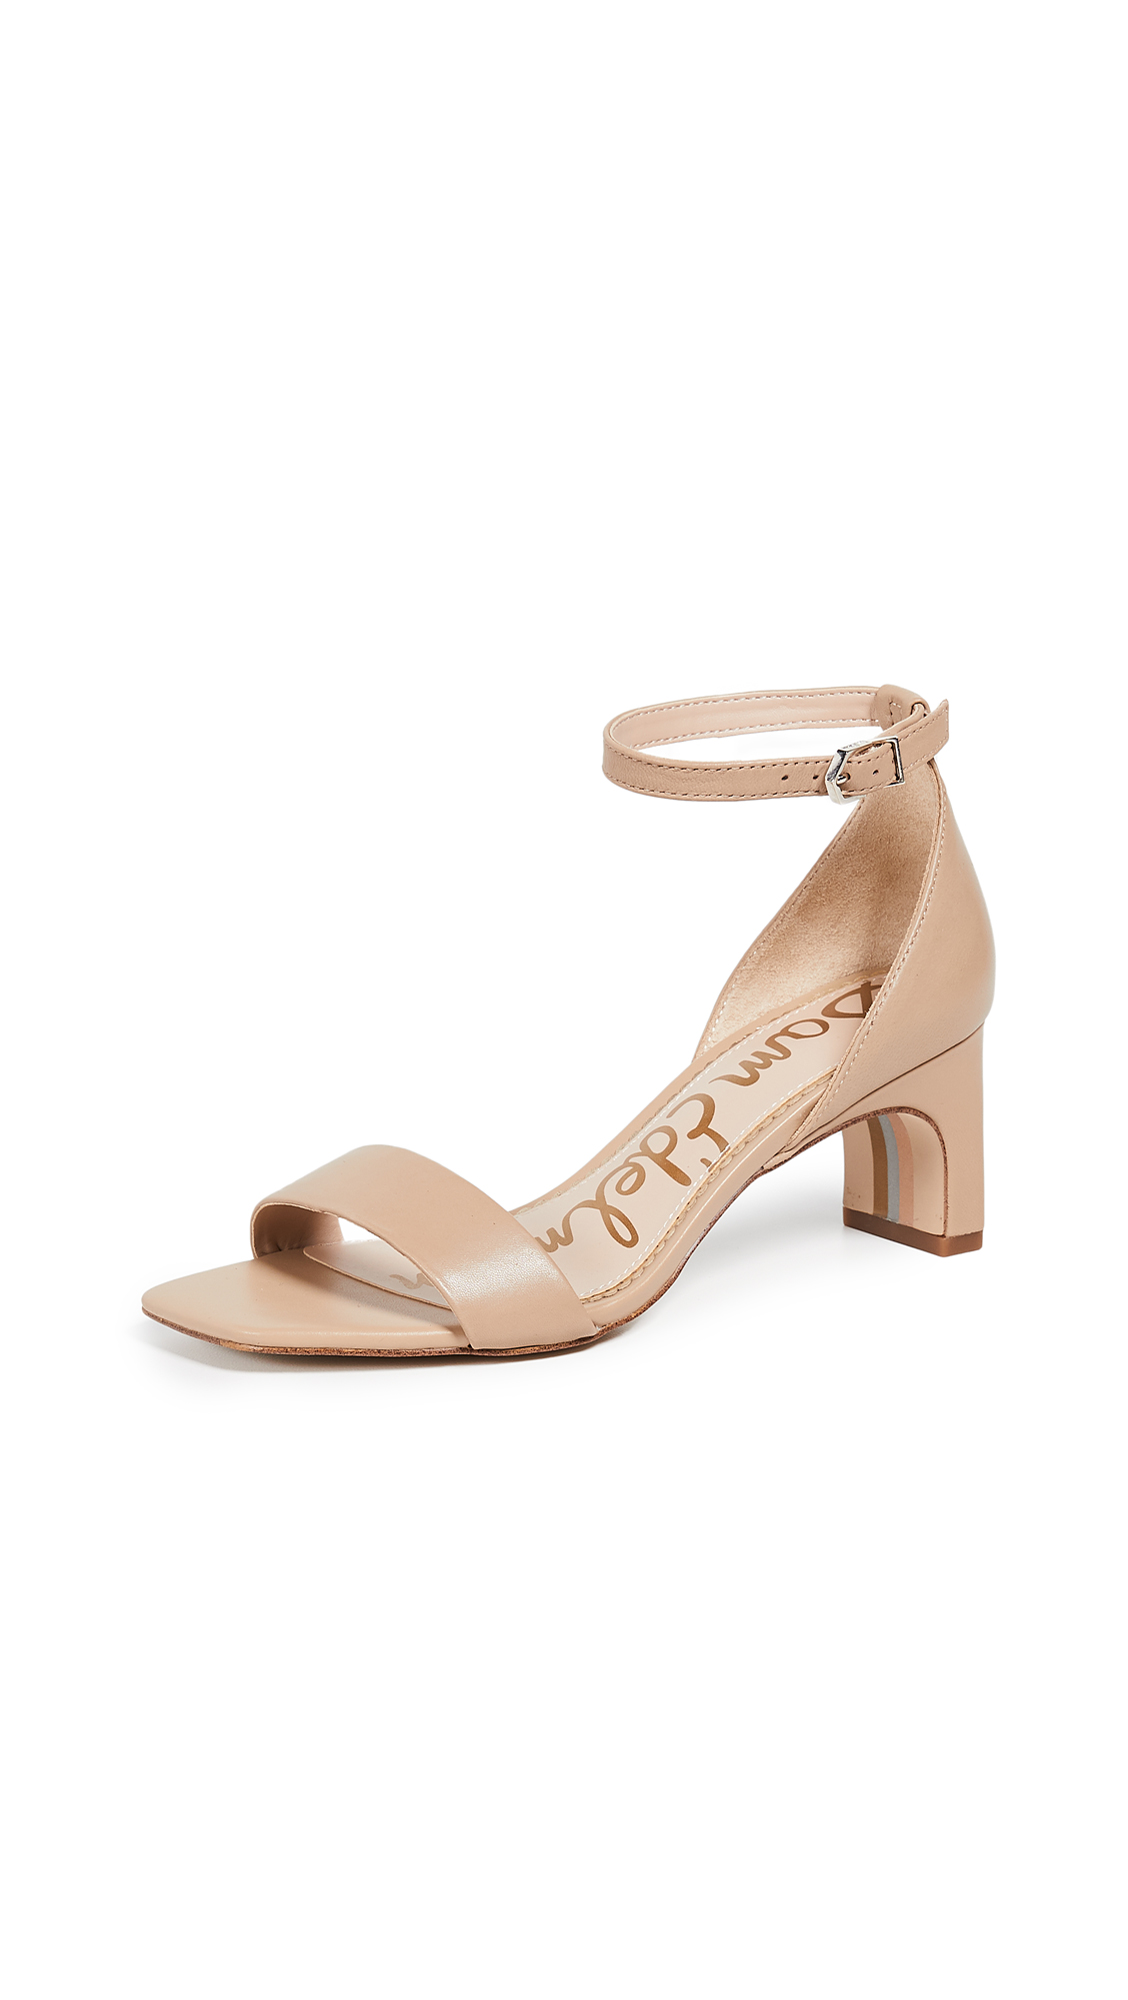 Sam Edelman Holmes Sandals - Classic Nude